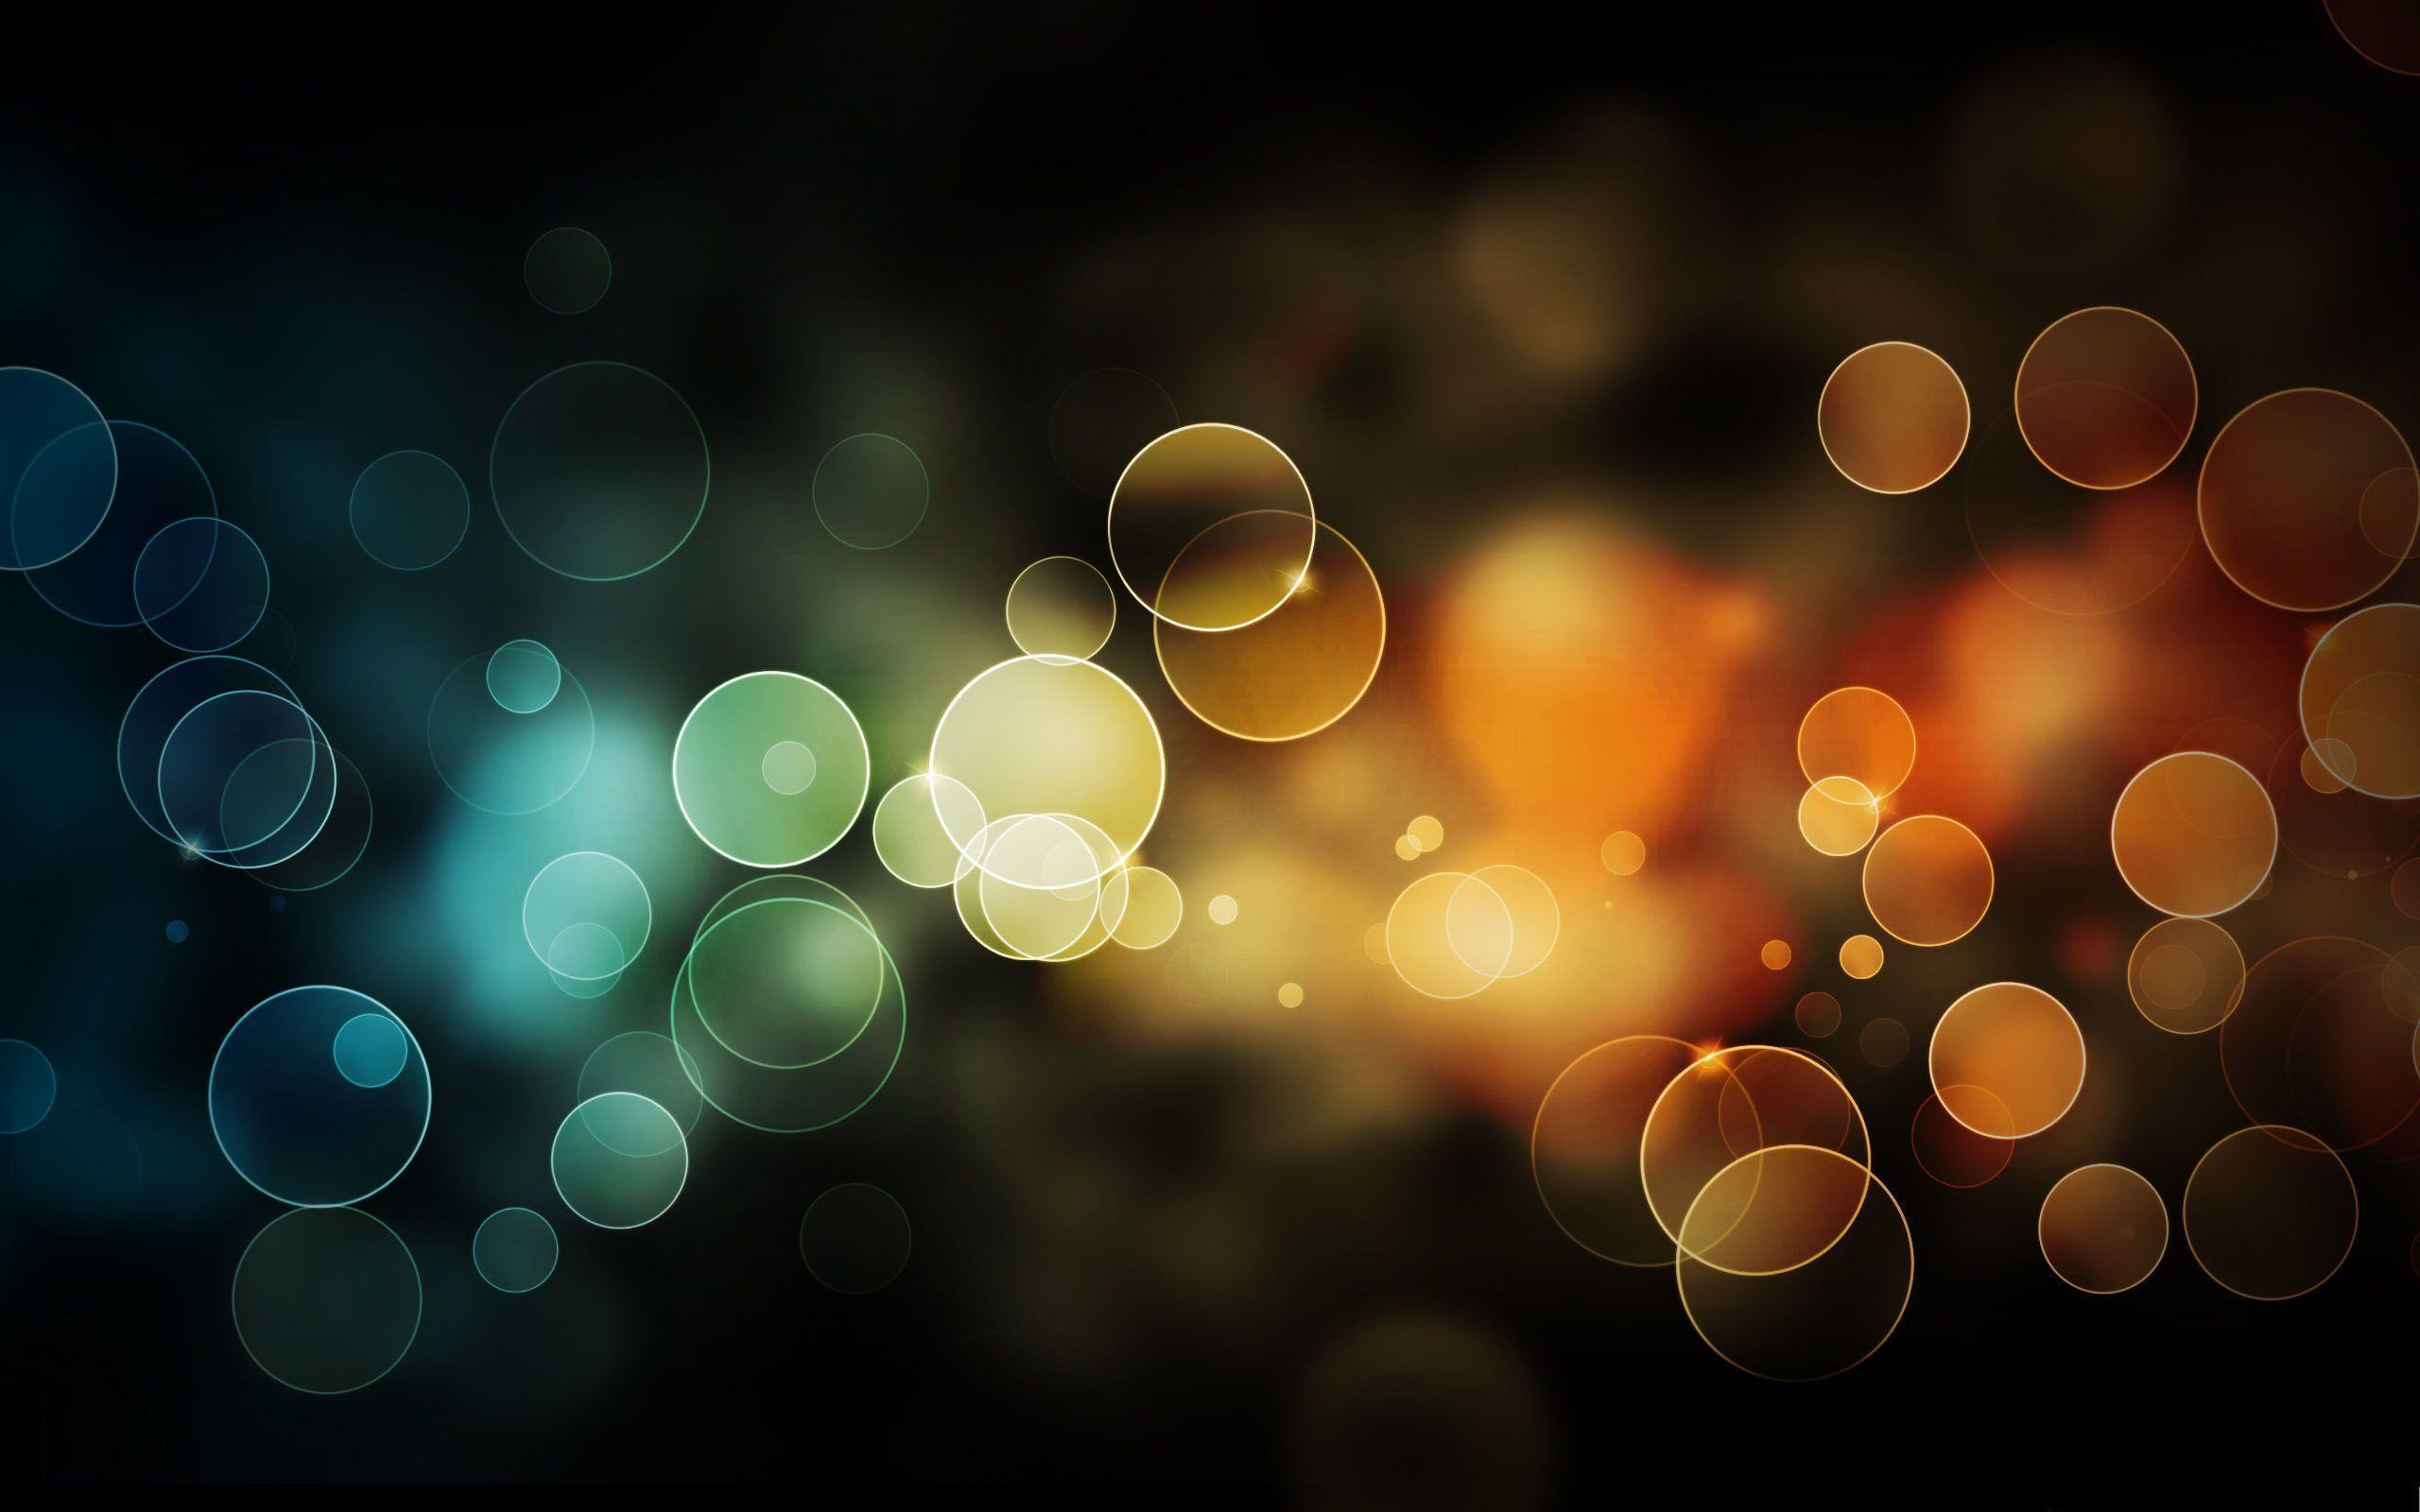 abstract backgrounds image